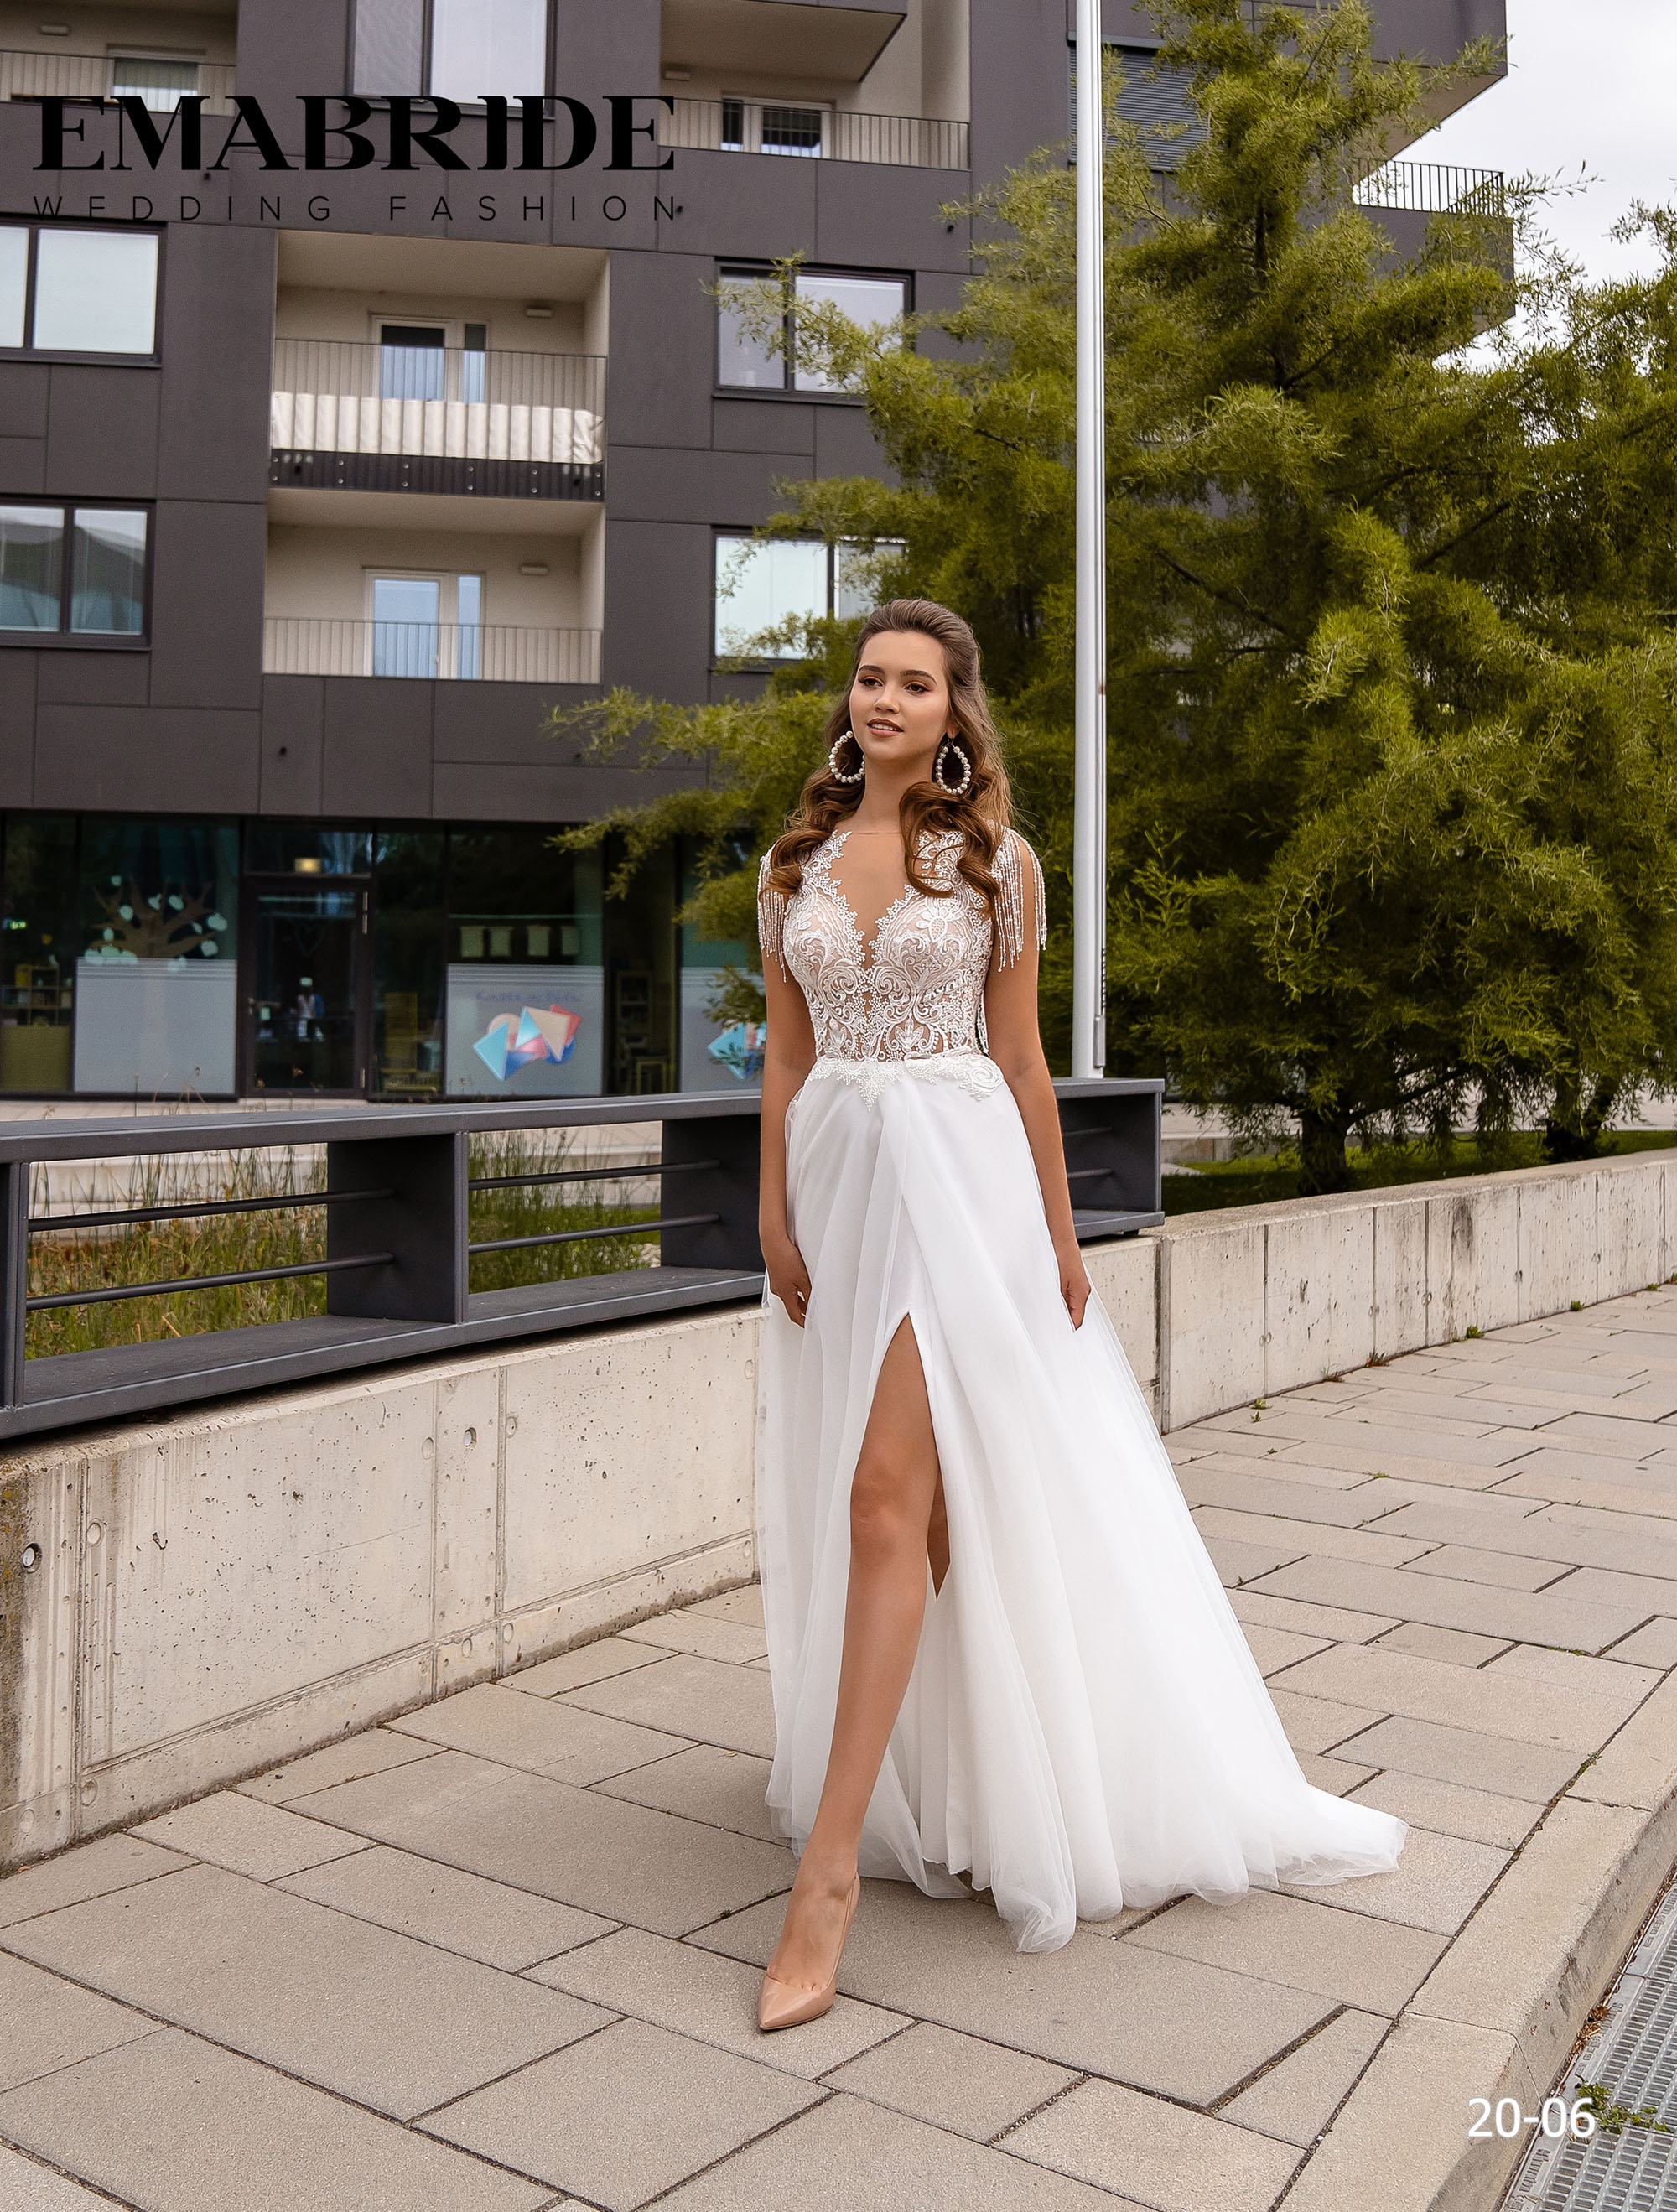 Model 20-06 | Buy wedding dresses wholesale by the ukrainian manufacturer Emabride